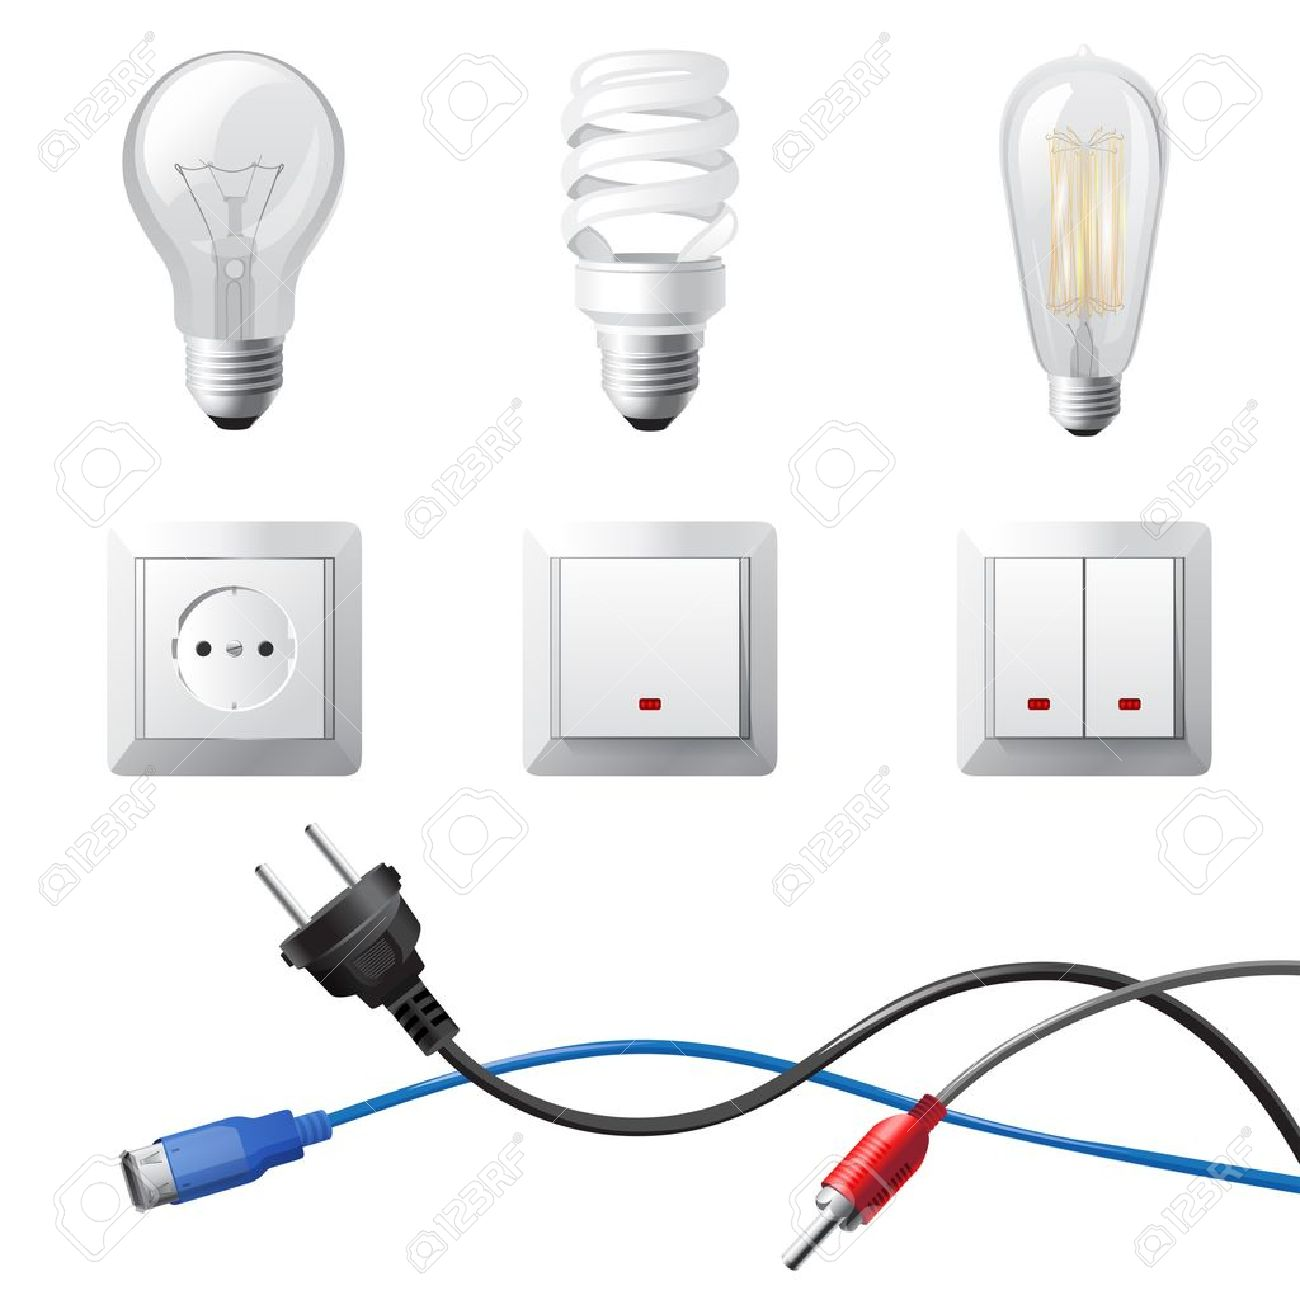 Highly Detailed Home Electricity Devices Set Royalty Free Cliparts ...